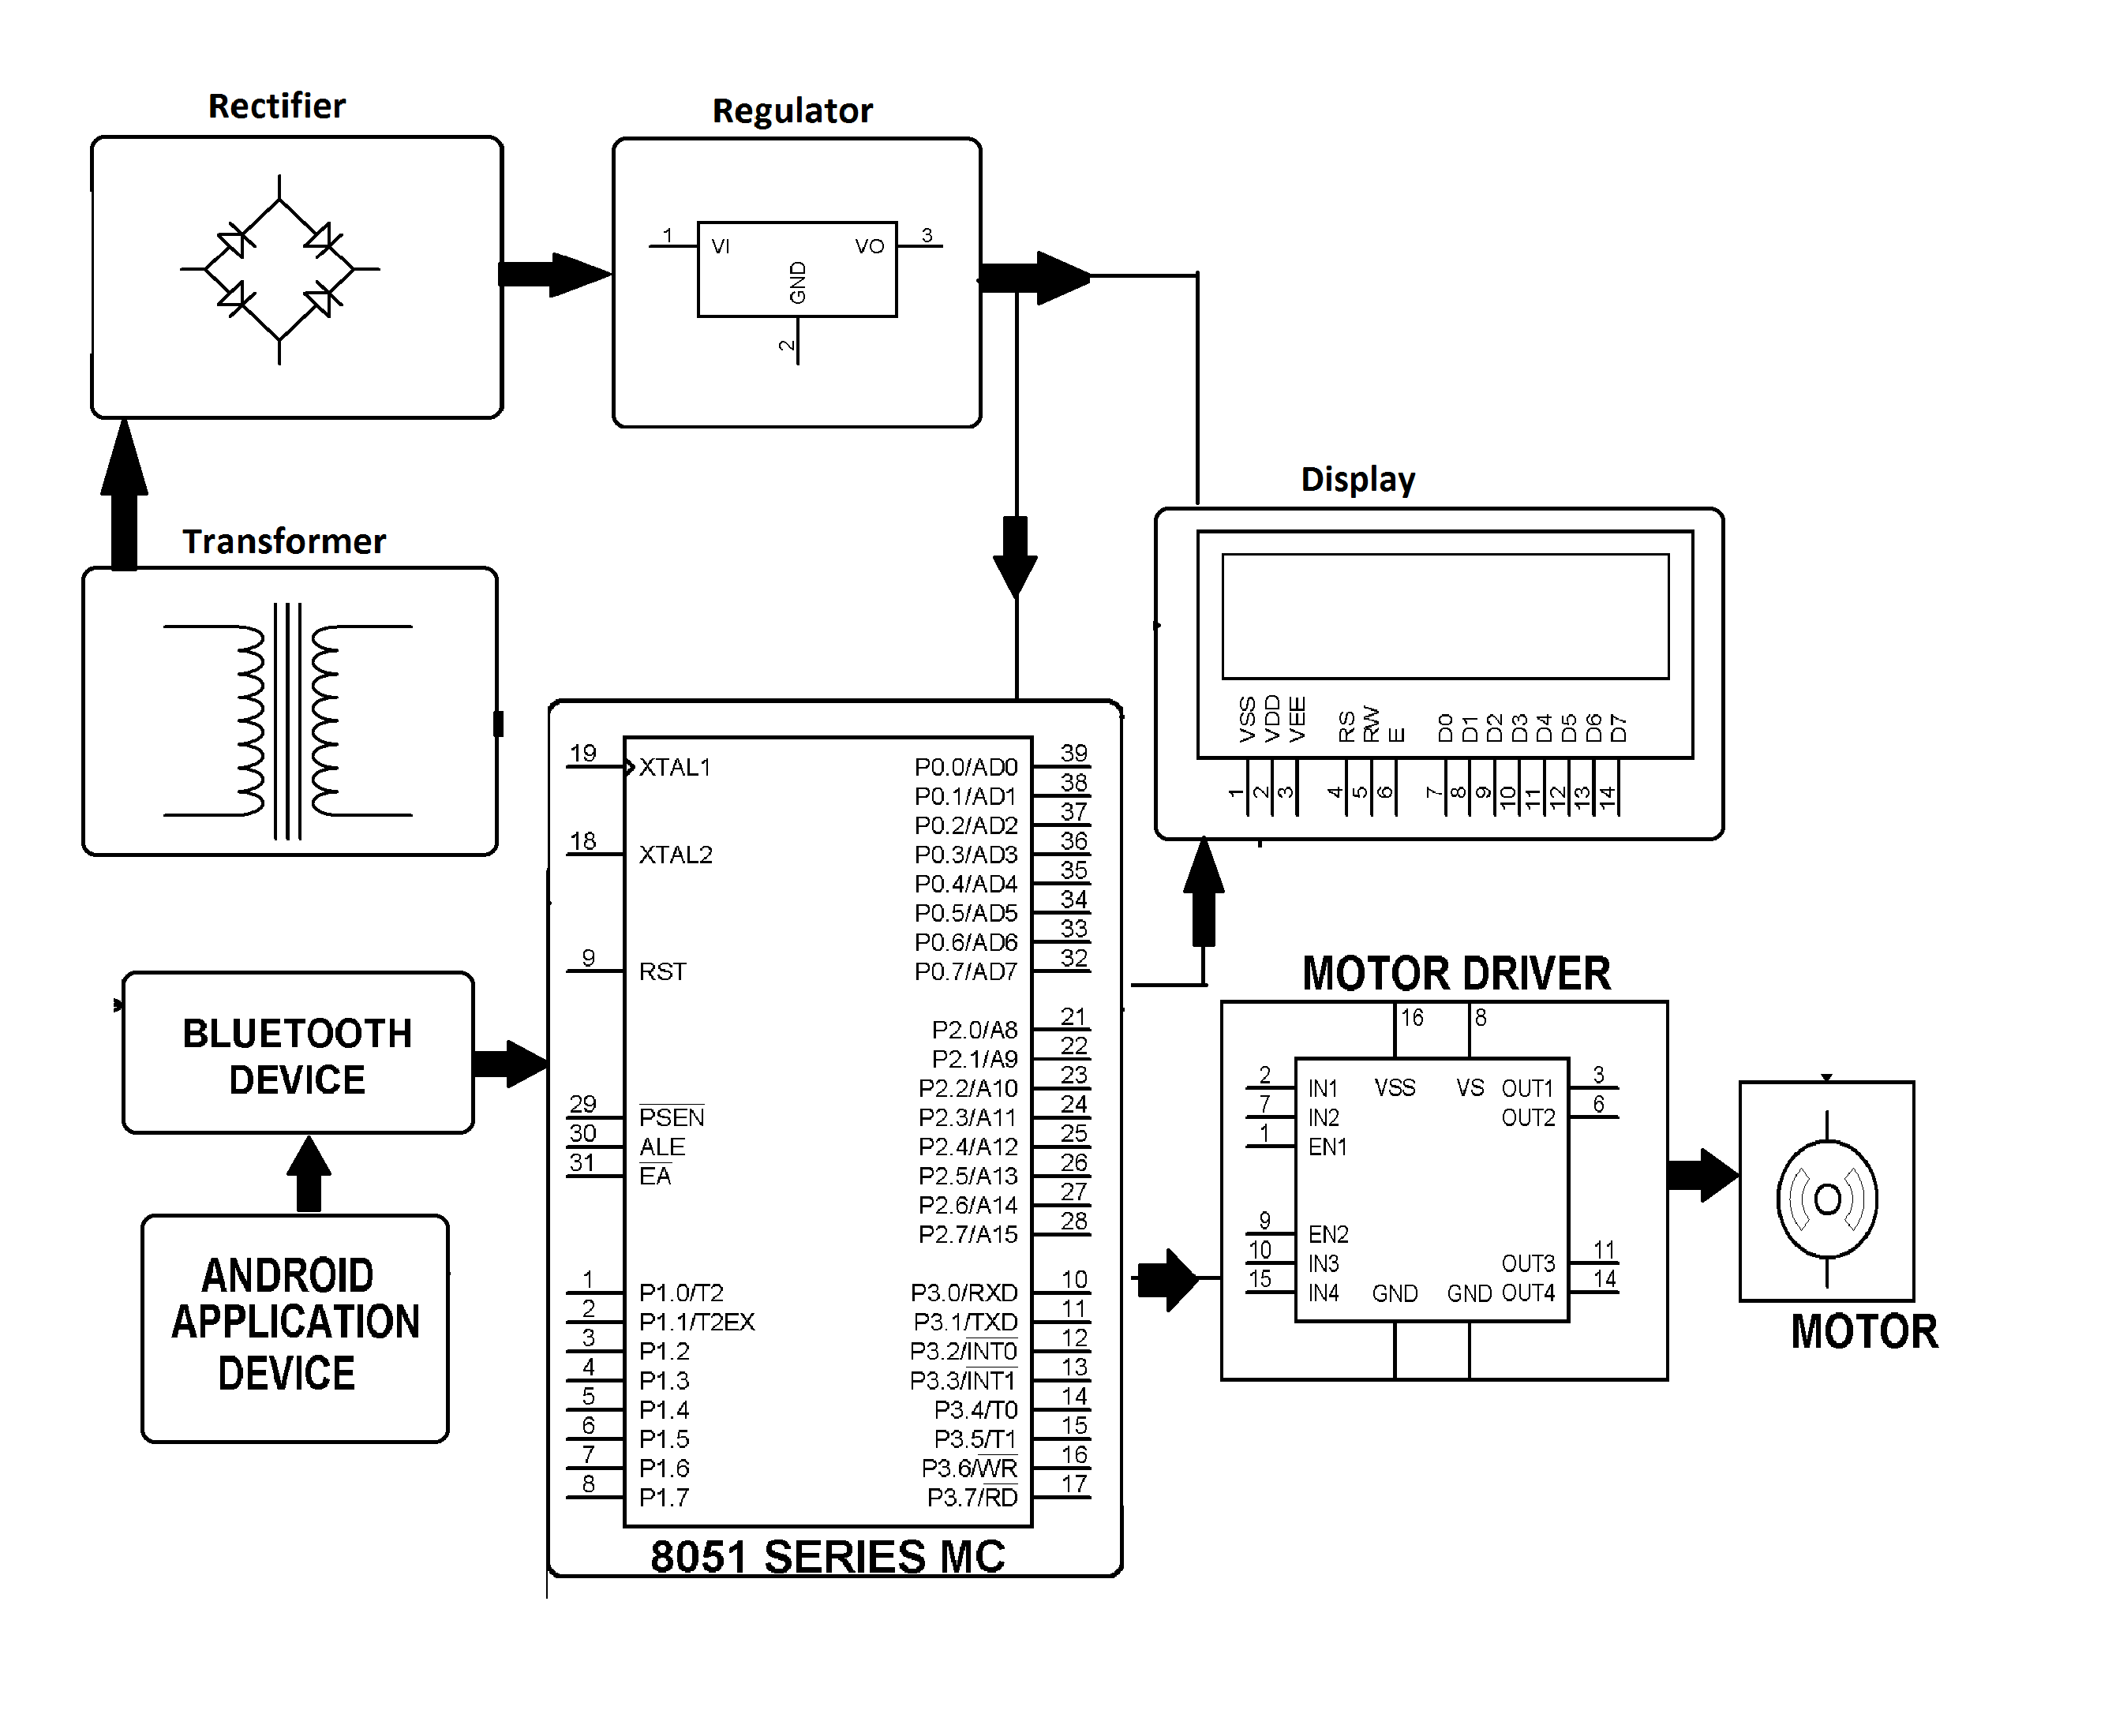 circuit diagram of automatic gate control system in railways